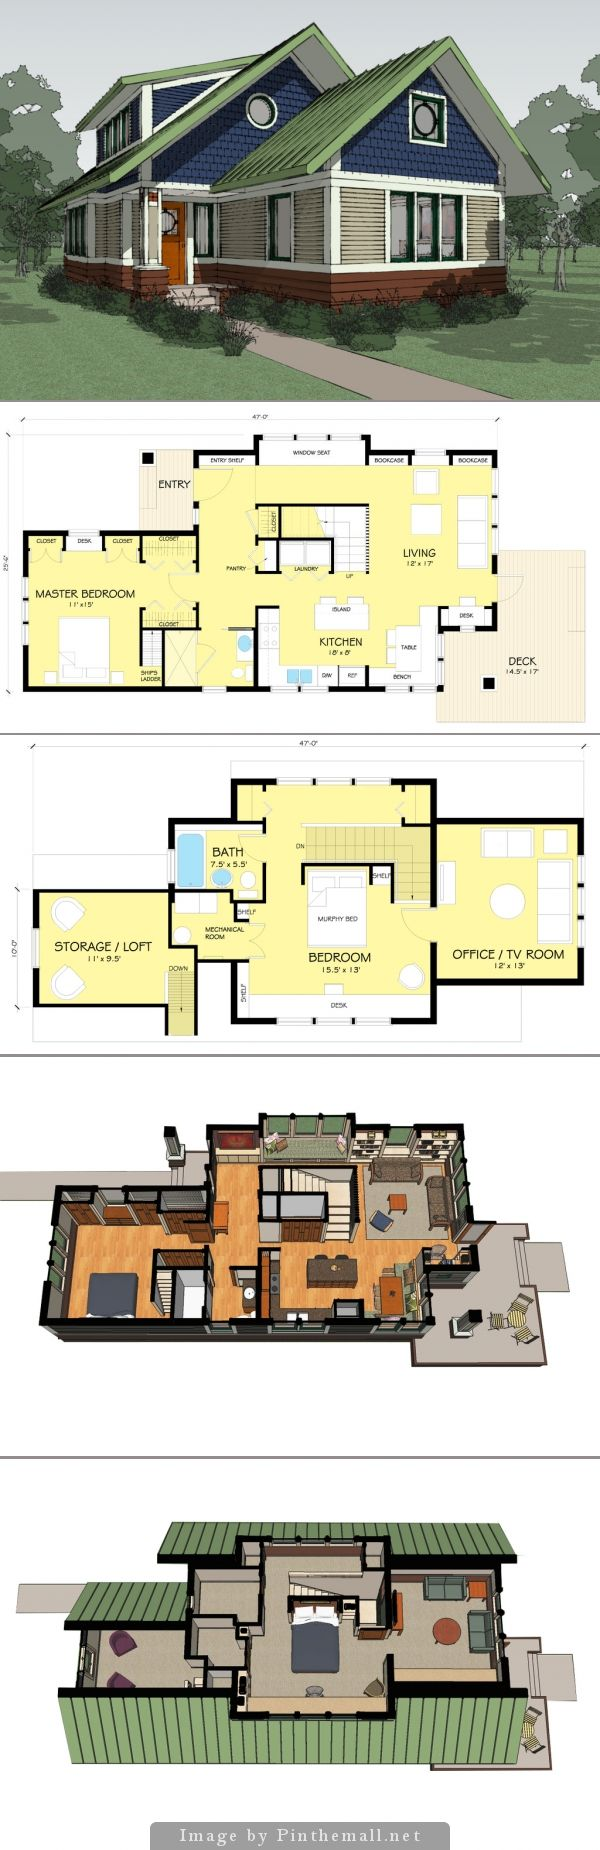 197 Best Images About My Future Not So Big House On Pinterest